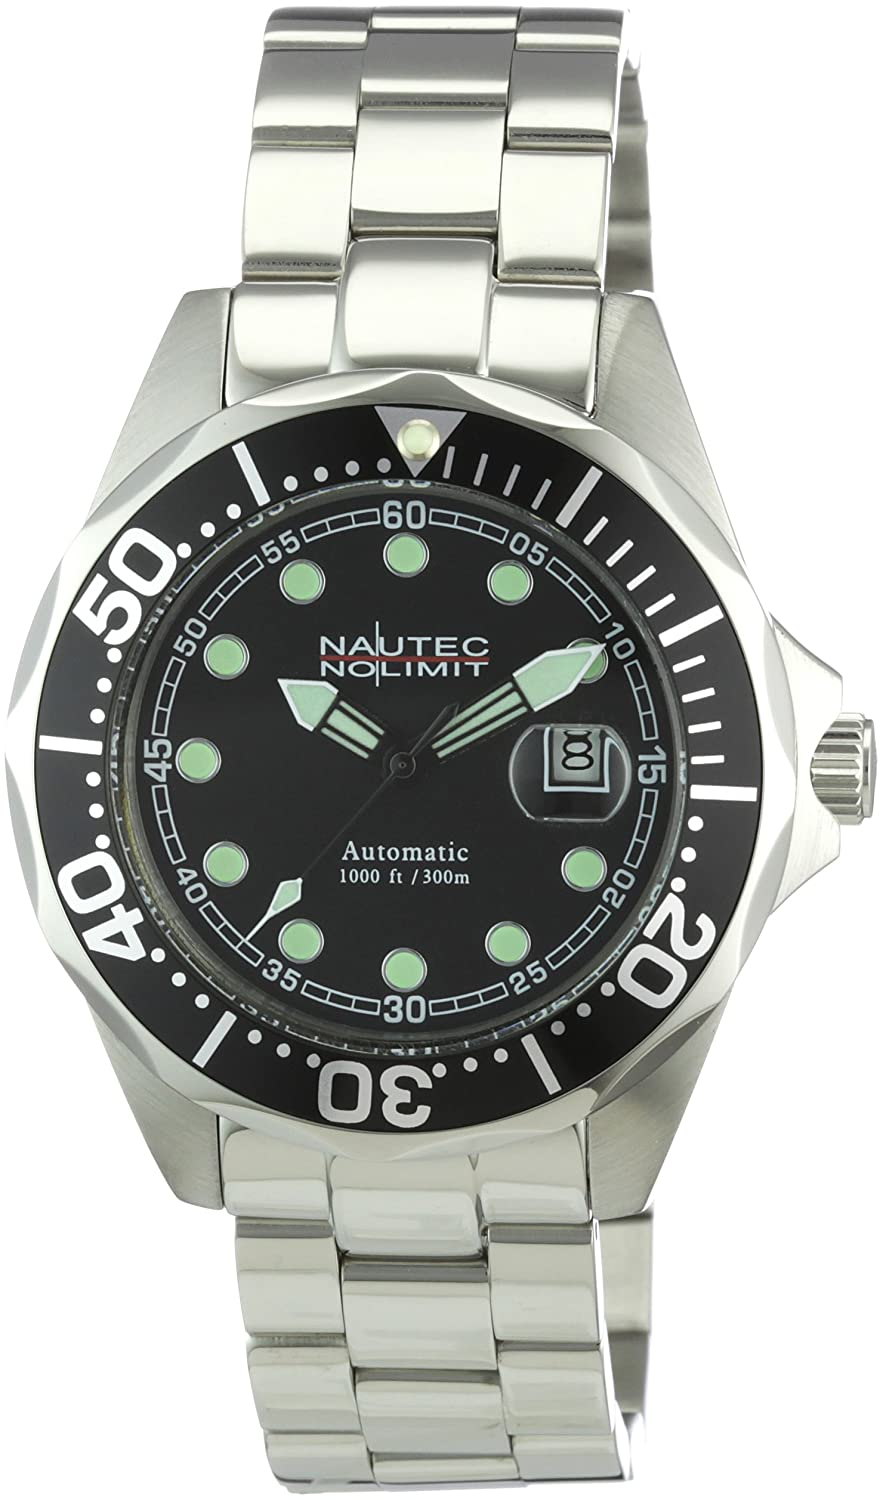 Nautec No Limit Herren-Armbanduhr Deep Sea Bravo Analog Automatik DSB AT-STSTBKBK